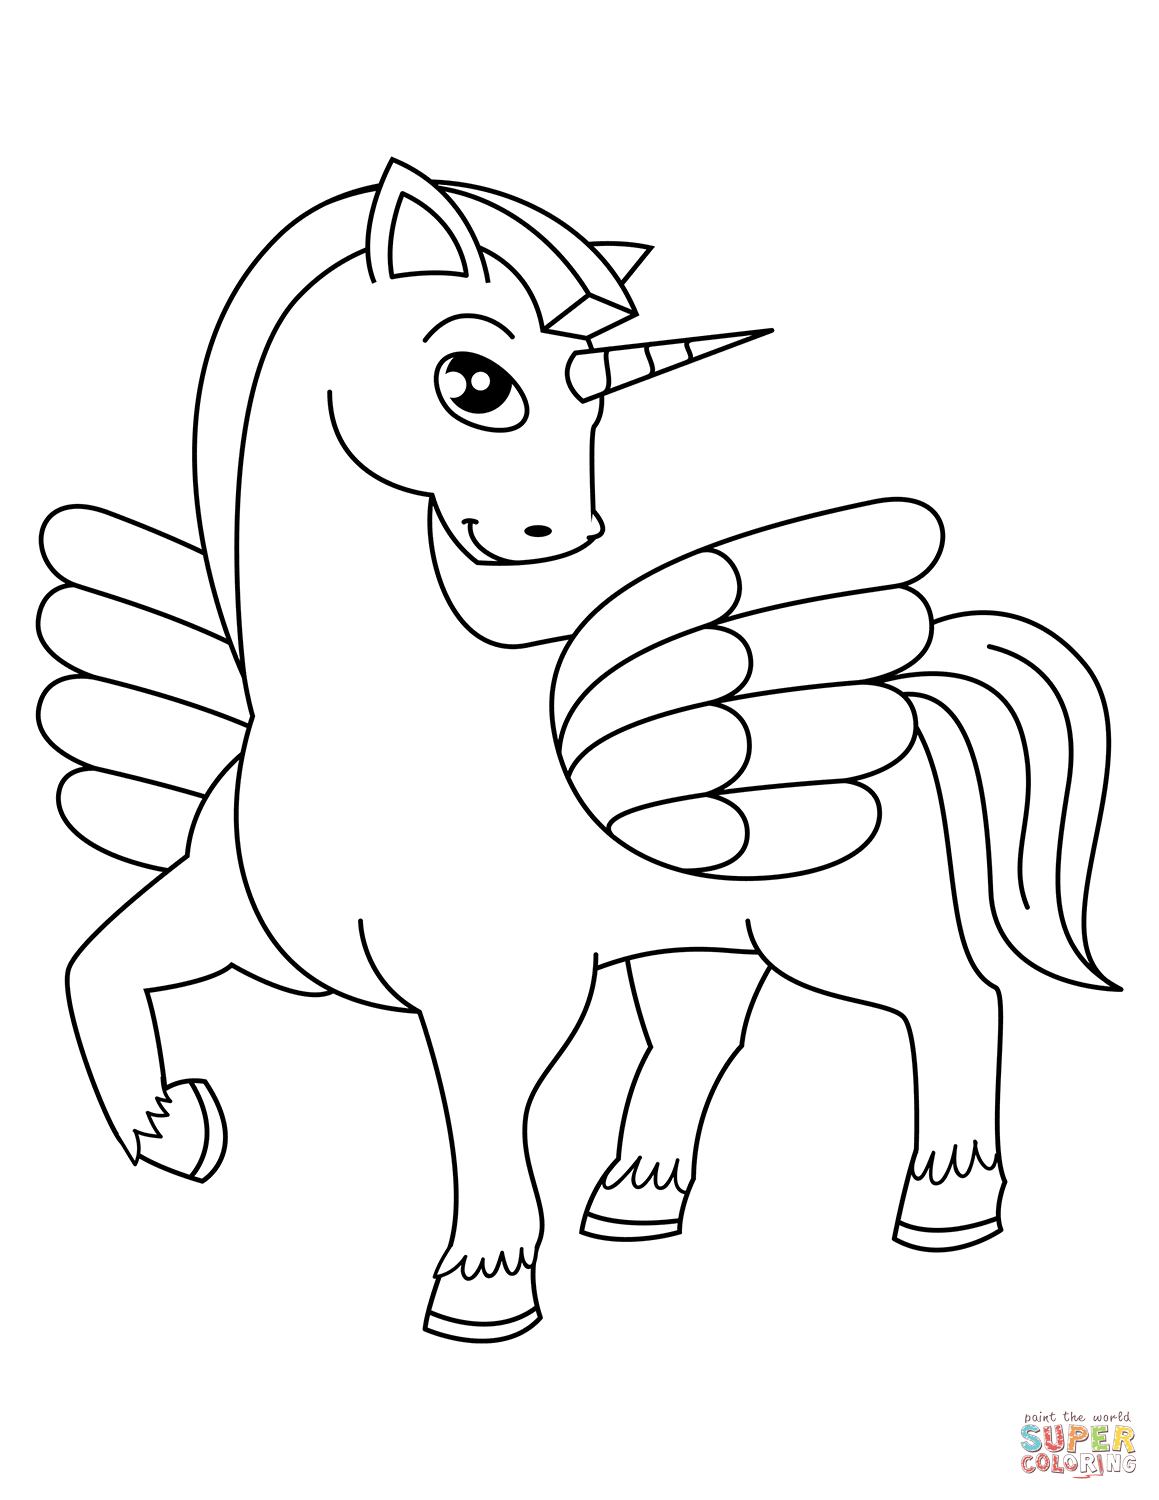 Cute Winged Unicorn Coloring Page